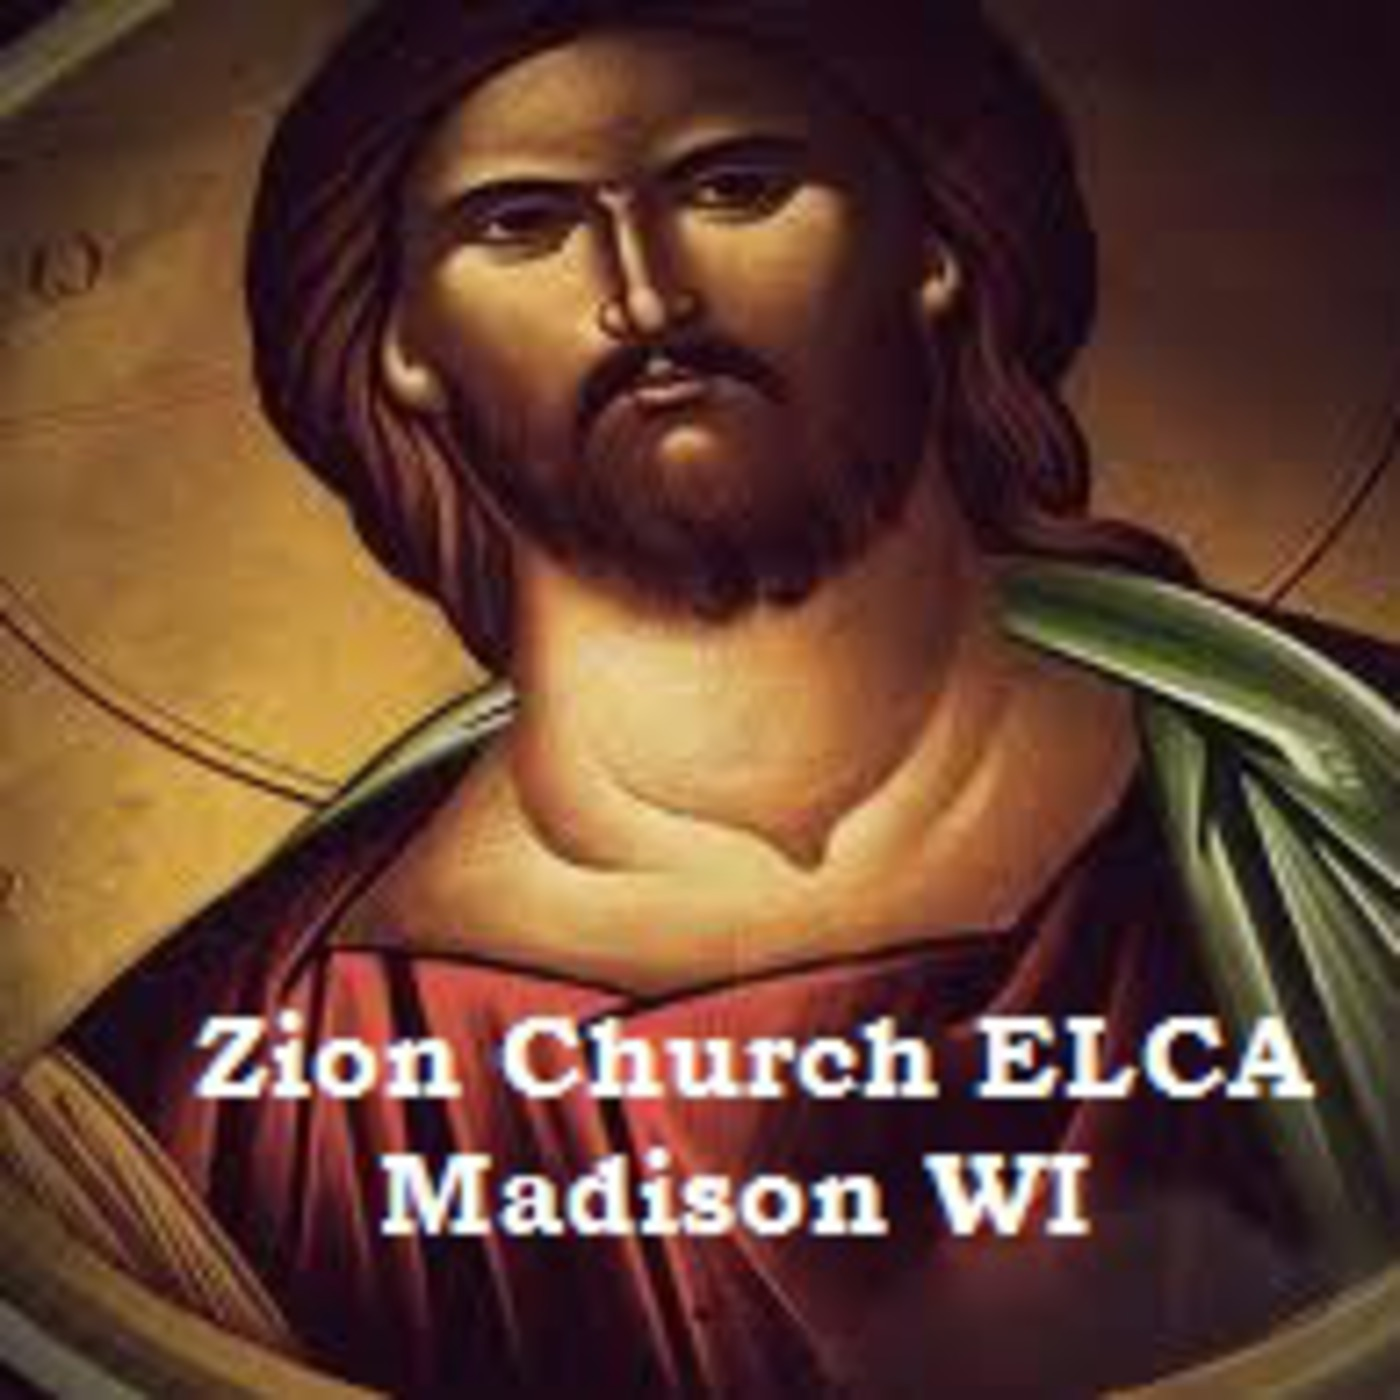 Pat Siegler @ Zion Church ELCA